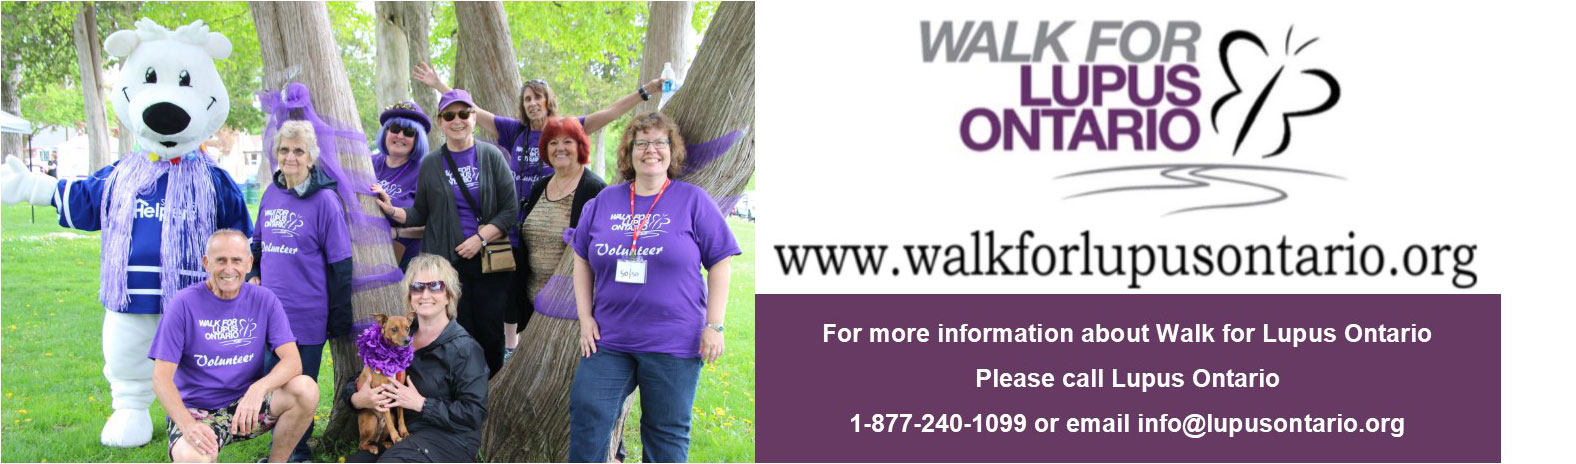 Walk for Lupus Banner.